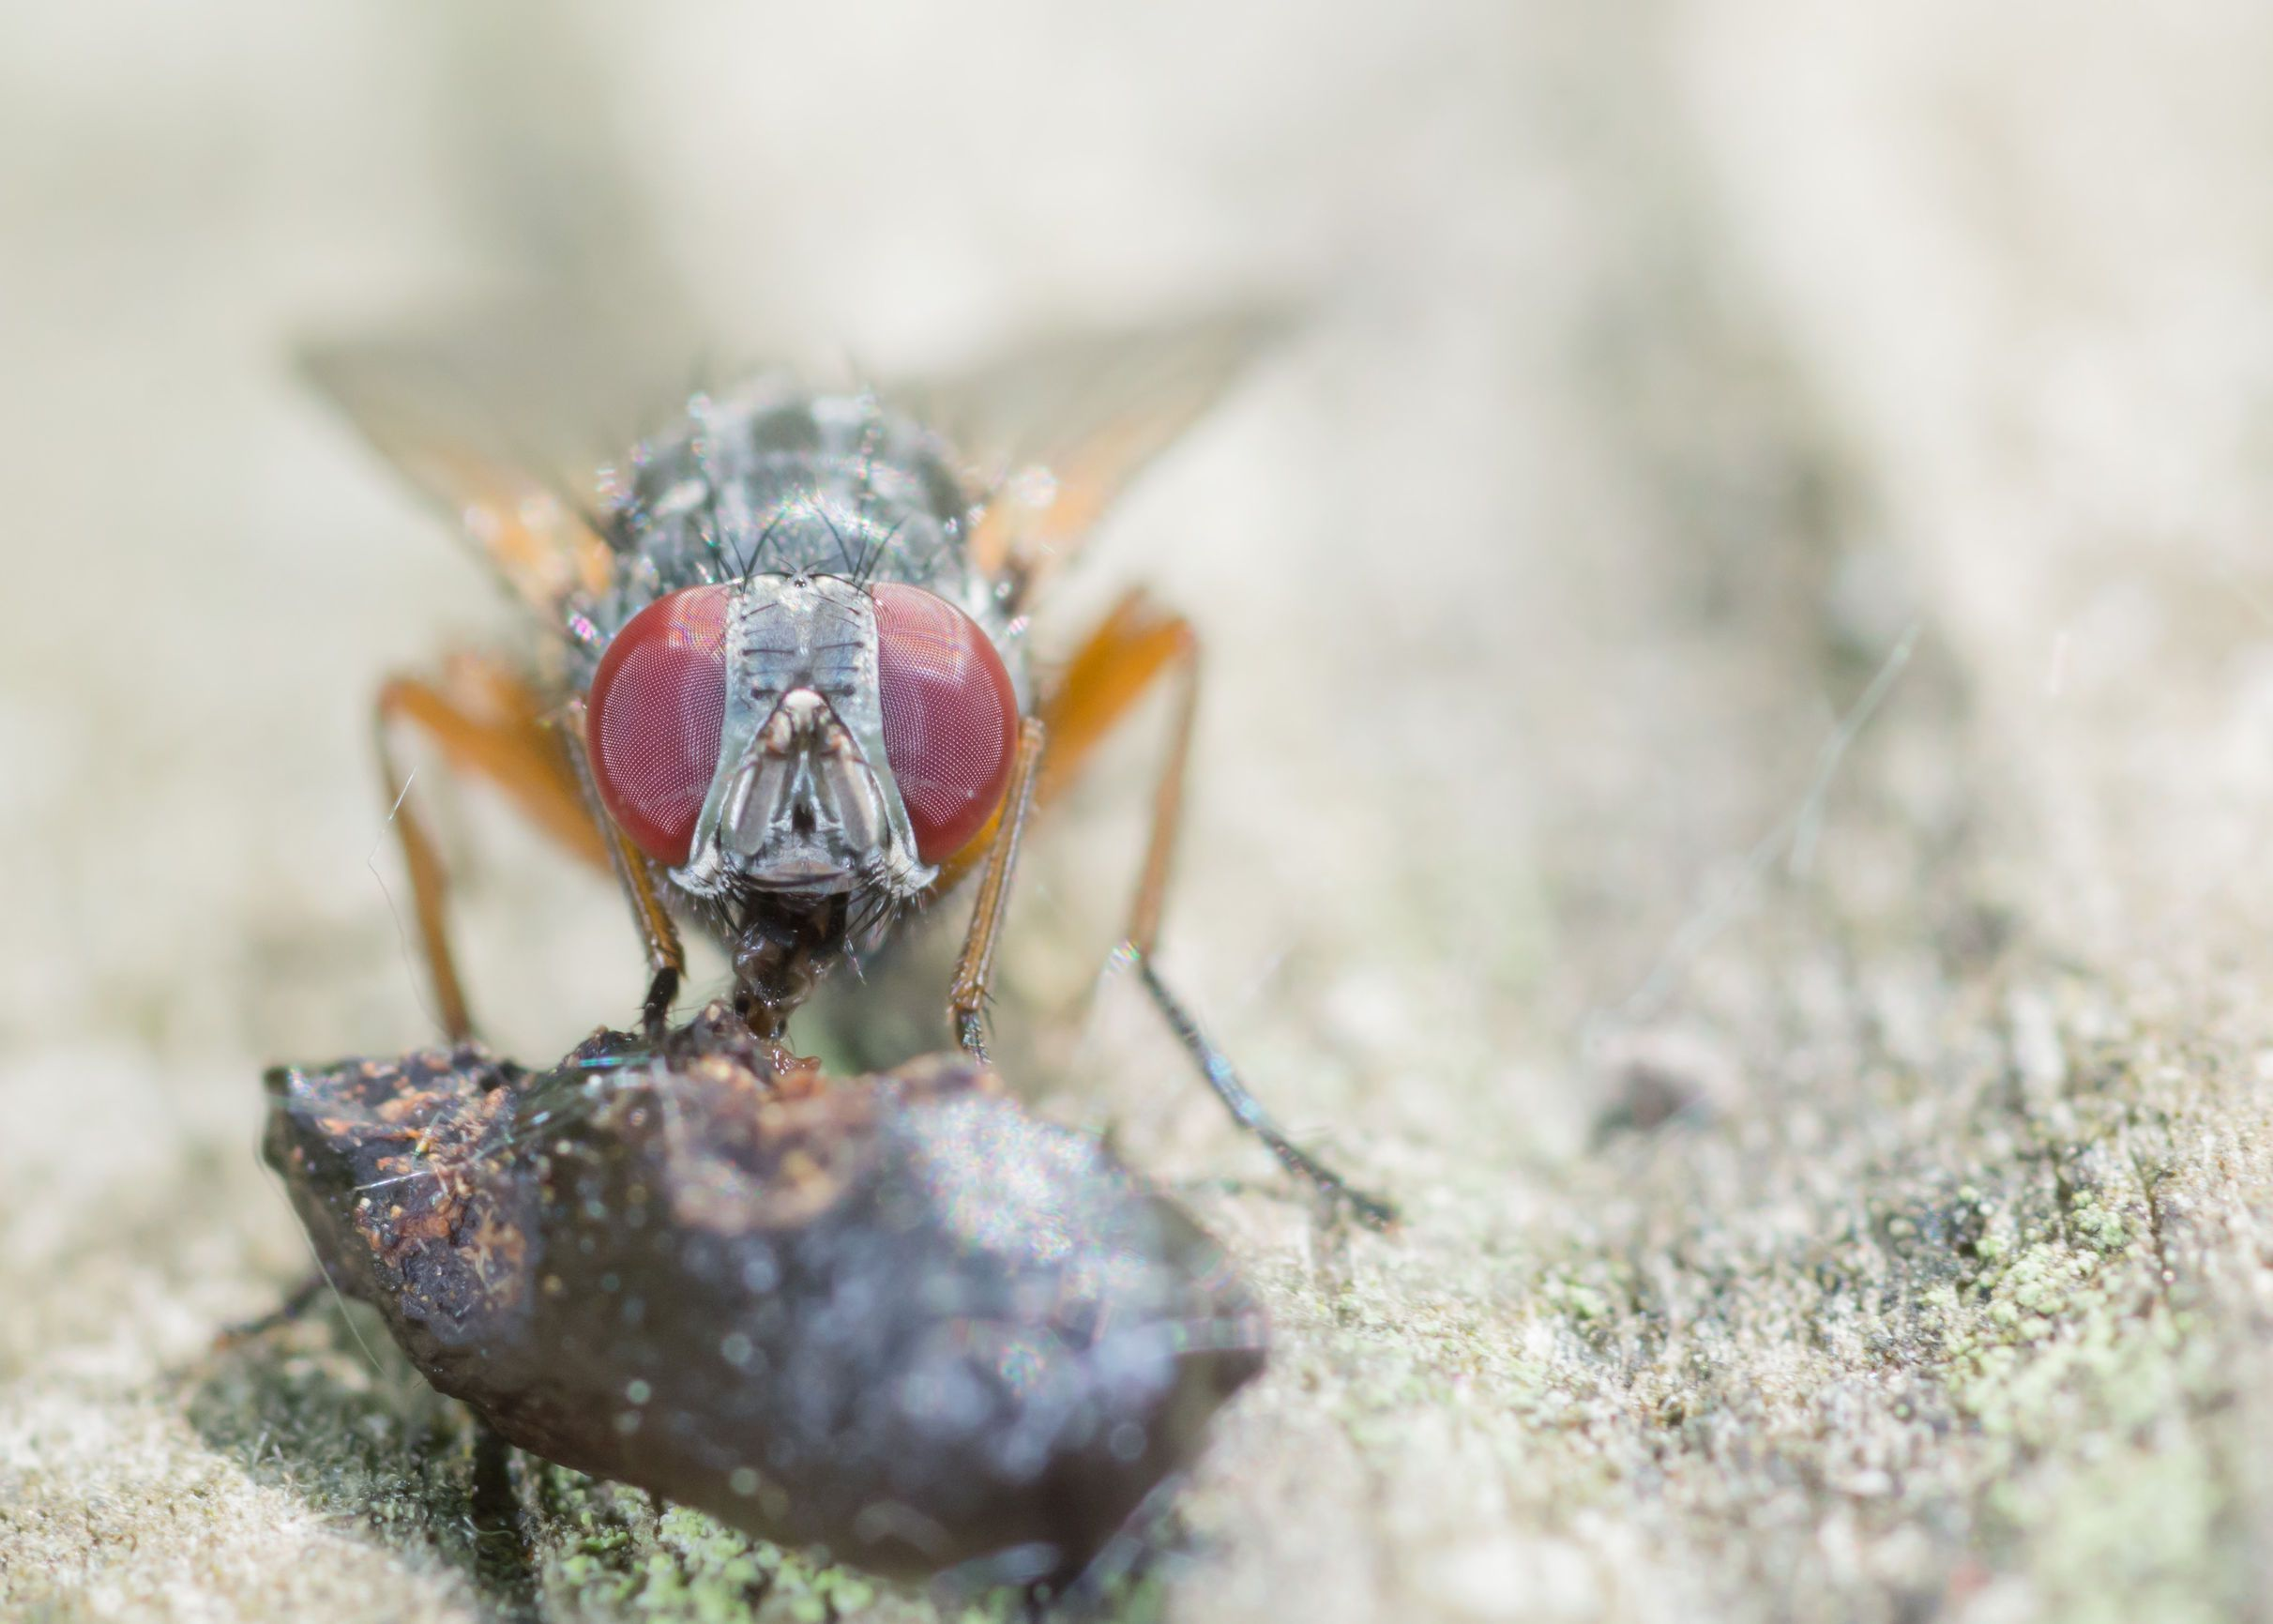 What Do Flies Eat Terminix, Pests, Flying